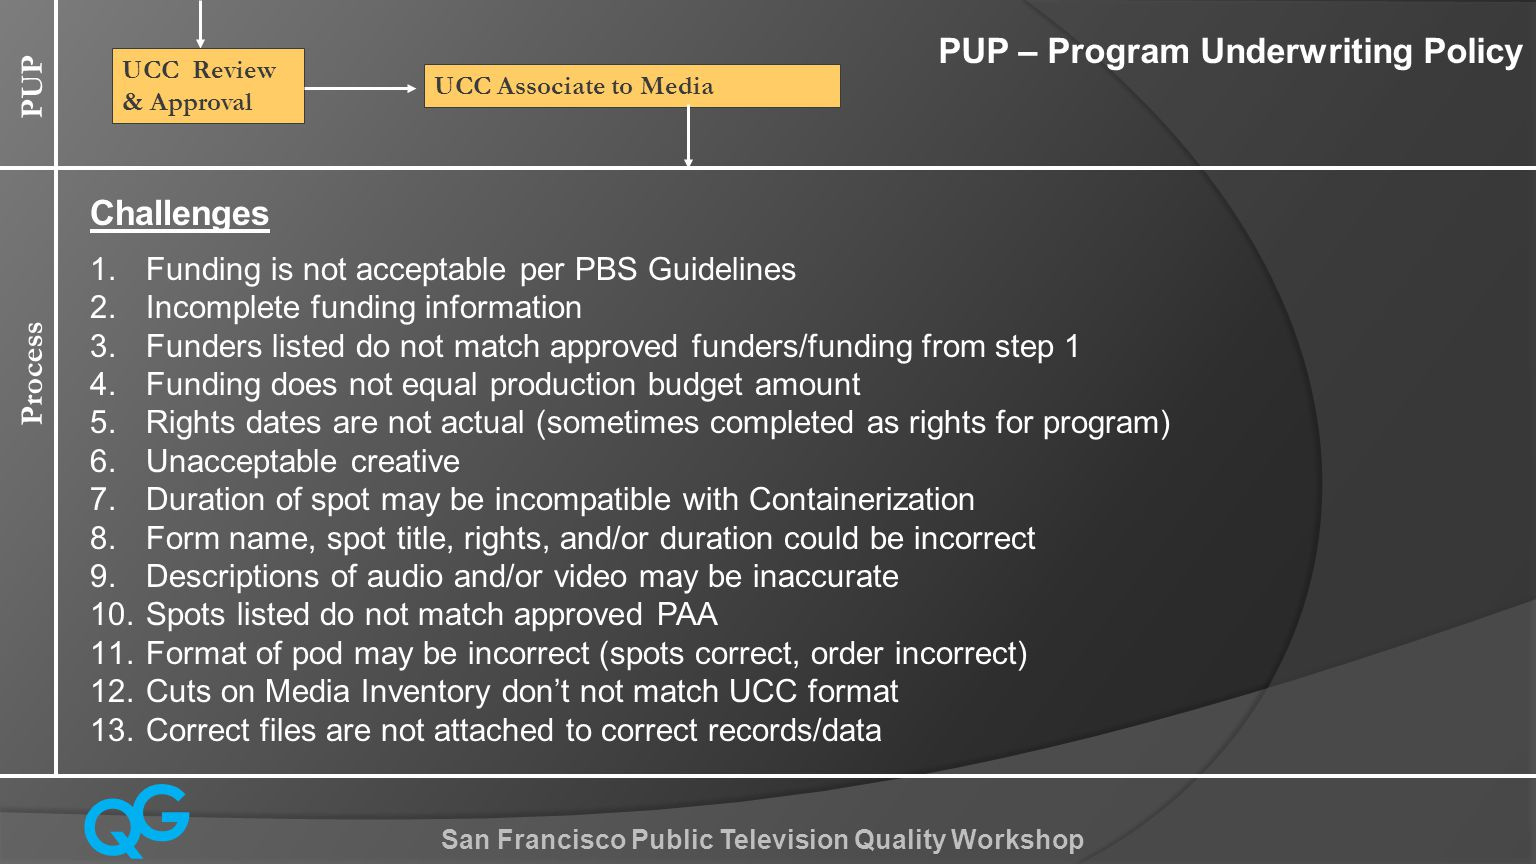 Q G San Francisco Public Television Quality Workshop PUP UCC Associate to Media UCC Review & Approval Process PUP – Program Underwriting Policy Challenges 1.Funding is not acceptable per PBS Guidelines 2.Incomplete funding information 3.Funders listed do not match approved funders/funding from step 1 4.Funding does not equal production budget amount 5.Rights dates are not actual (sometimes completed as rights for program) 6.Unacceptable creative 7.Duration of spot may be incompatible with Containerization 8.Form name, spot title, rights, and/or duration could be incorrect 9.Descriptions of audio and/or video may be inaccurate 10.Spots listed do not match approved PAA 11.Format of pod may be incorrect (spots correct, order incorrect) 12.Cuts on Media Inventory don't not match UCC format 13.Correct files are not attached to correct records/data